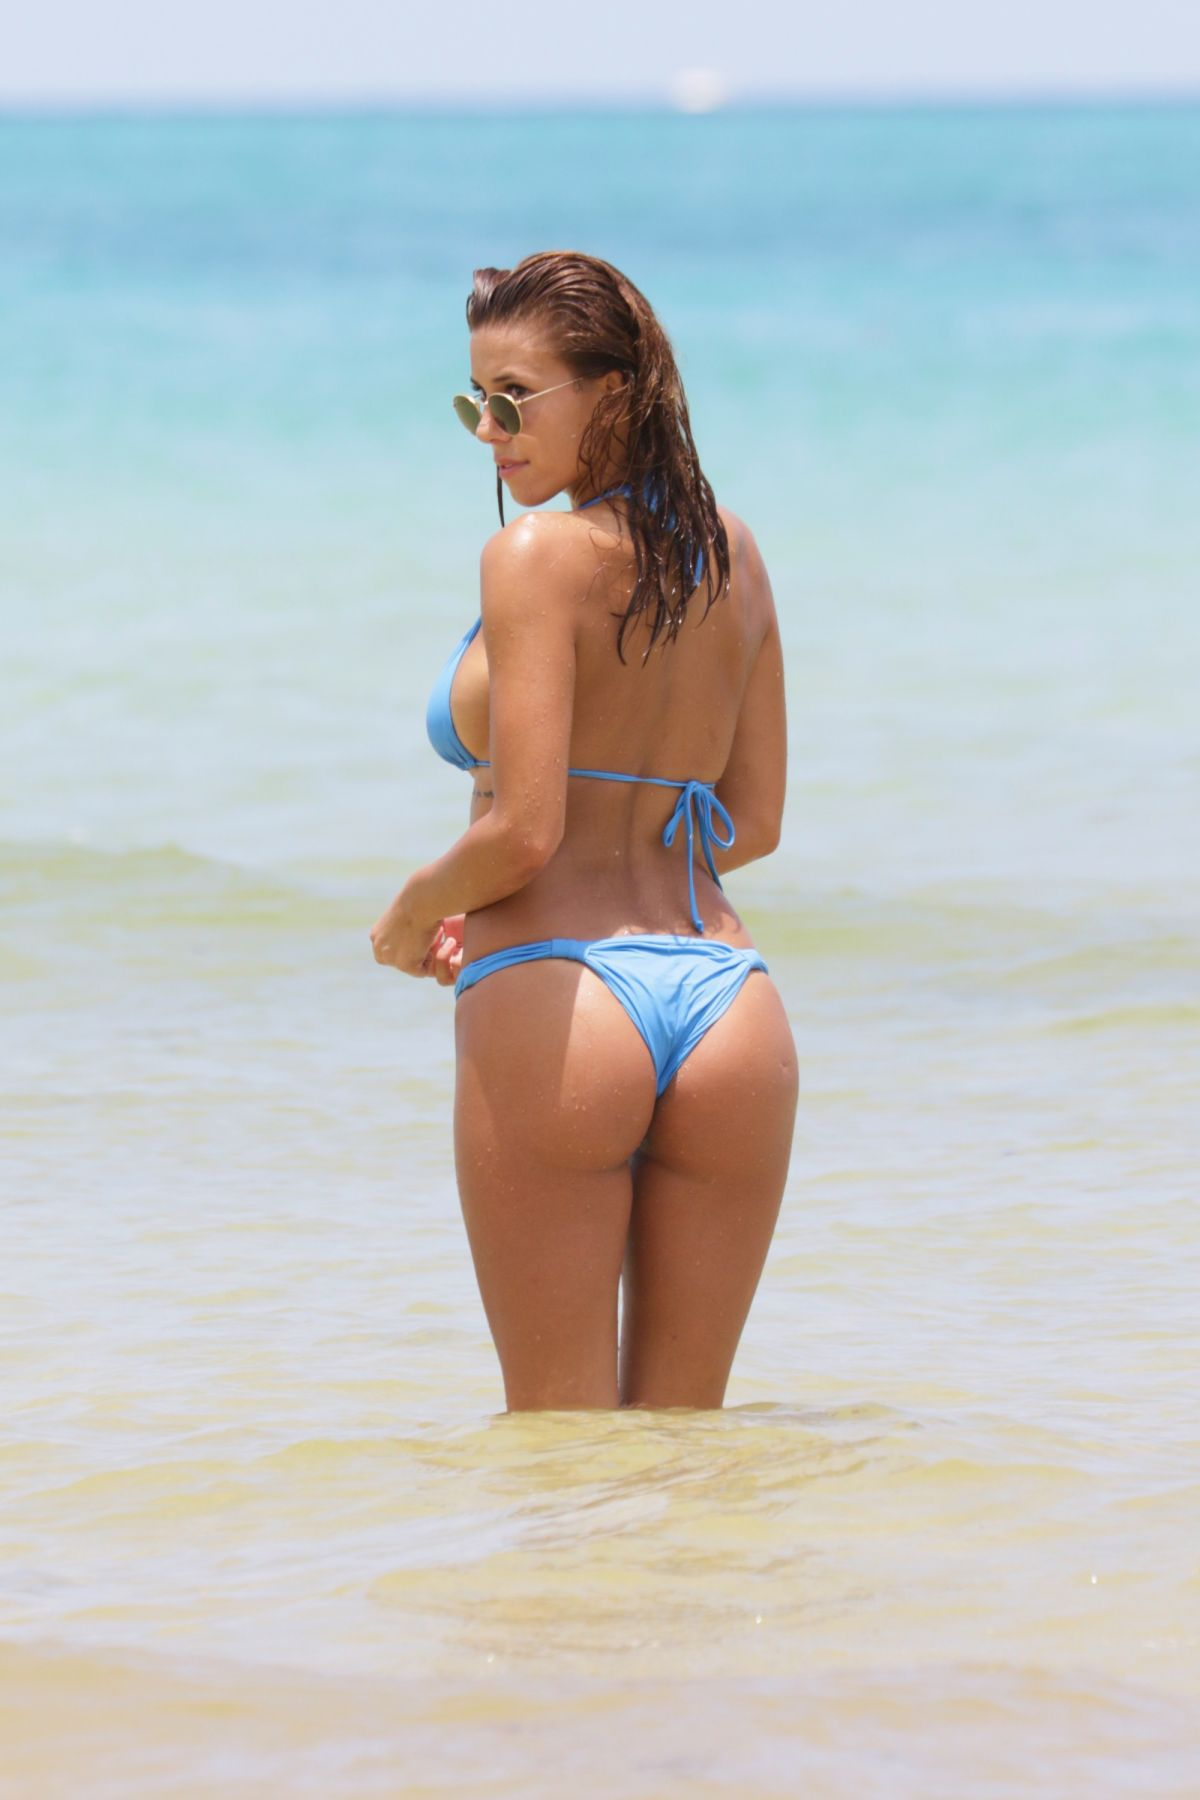 Devin Brugman High Quality Wallpapers For Iphone